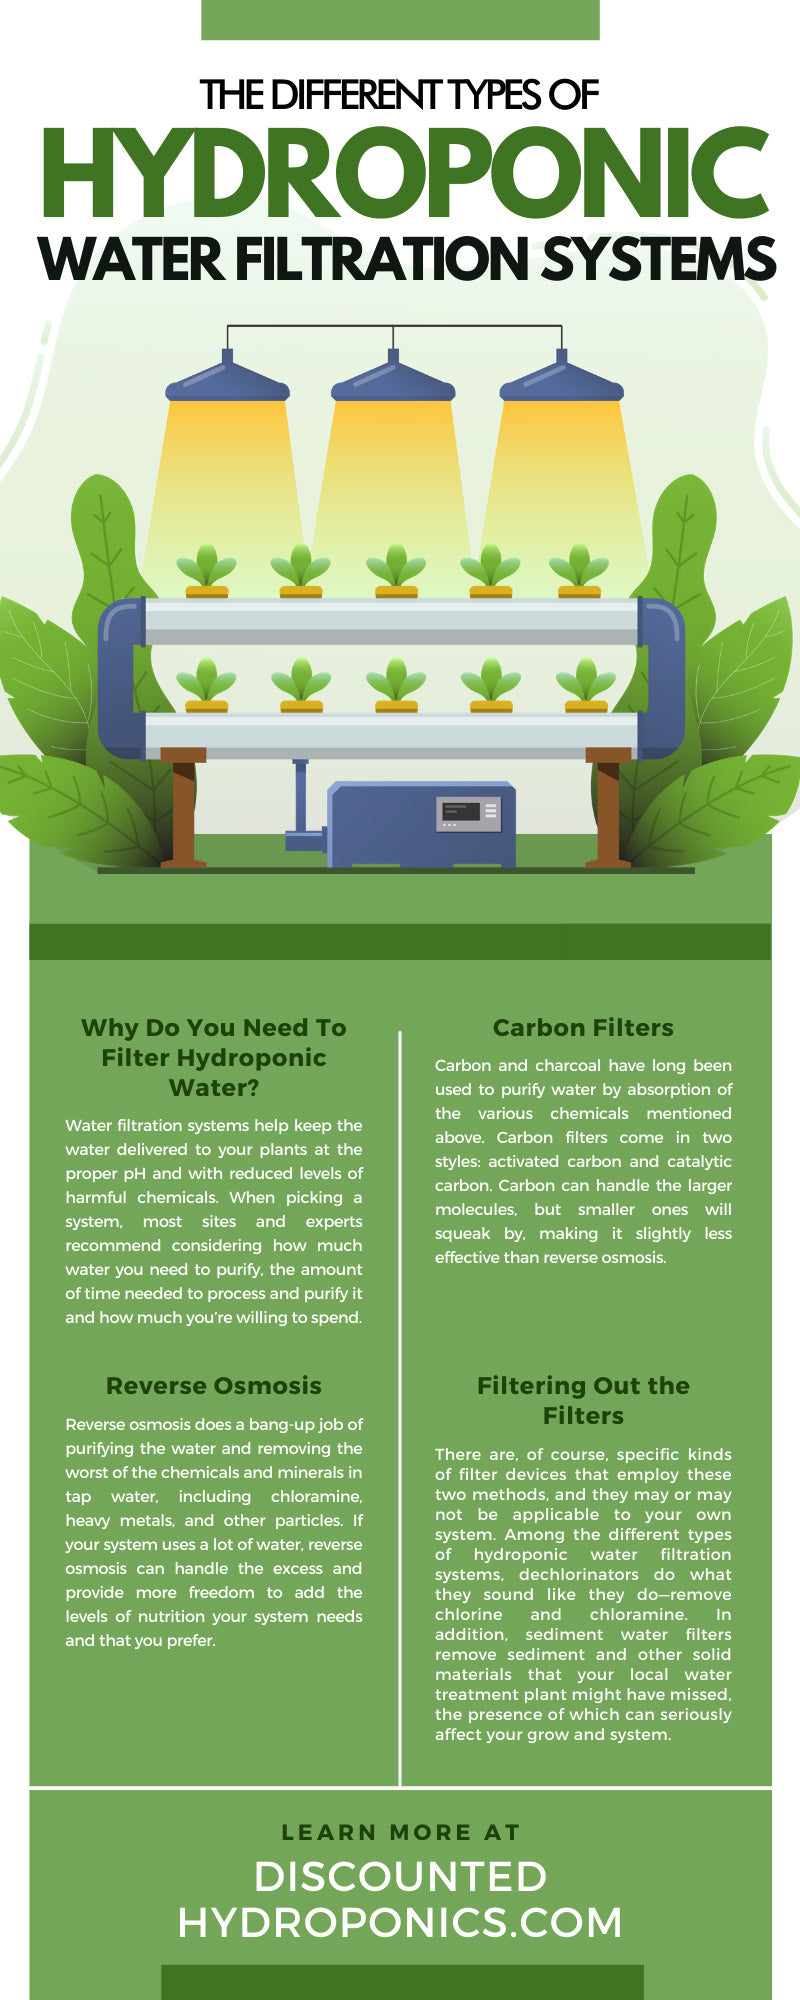 The Different Types of Hydroponic Water Filtration Systems